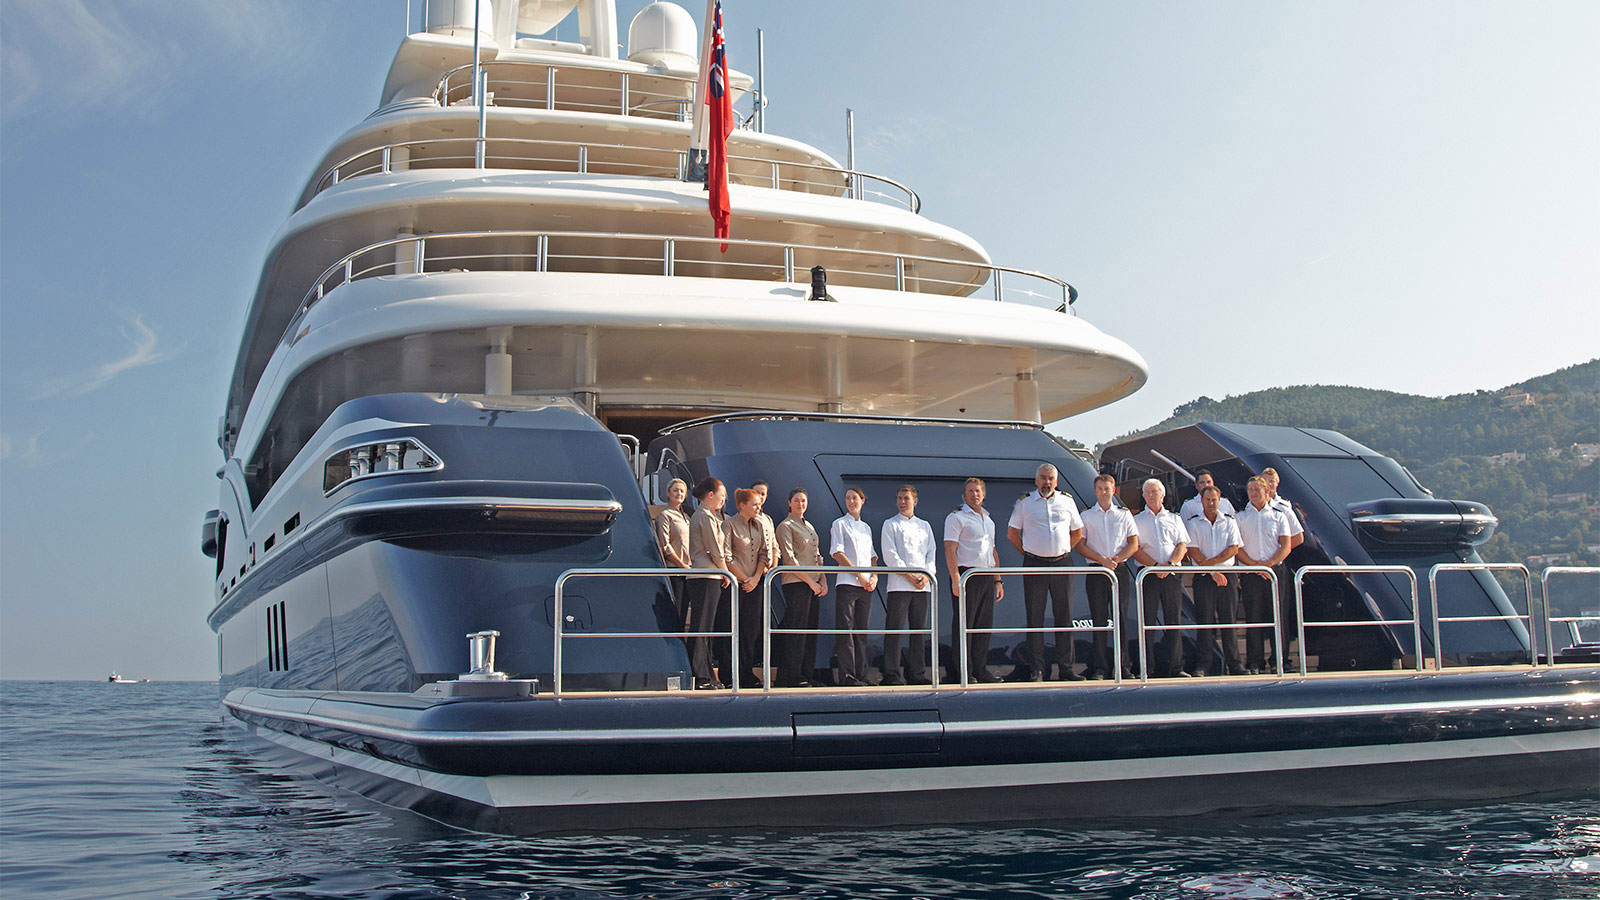 Customer Service Lessons from the Mega Yacht Industry